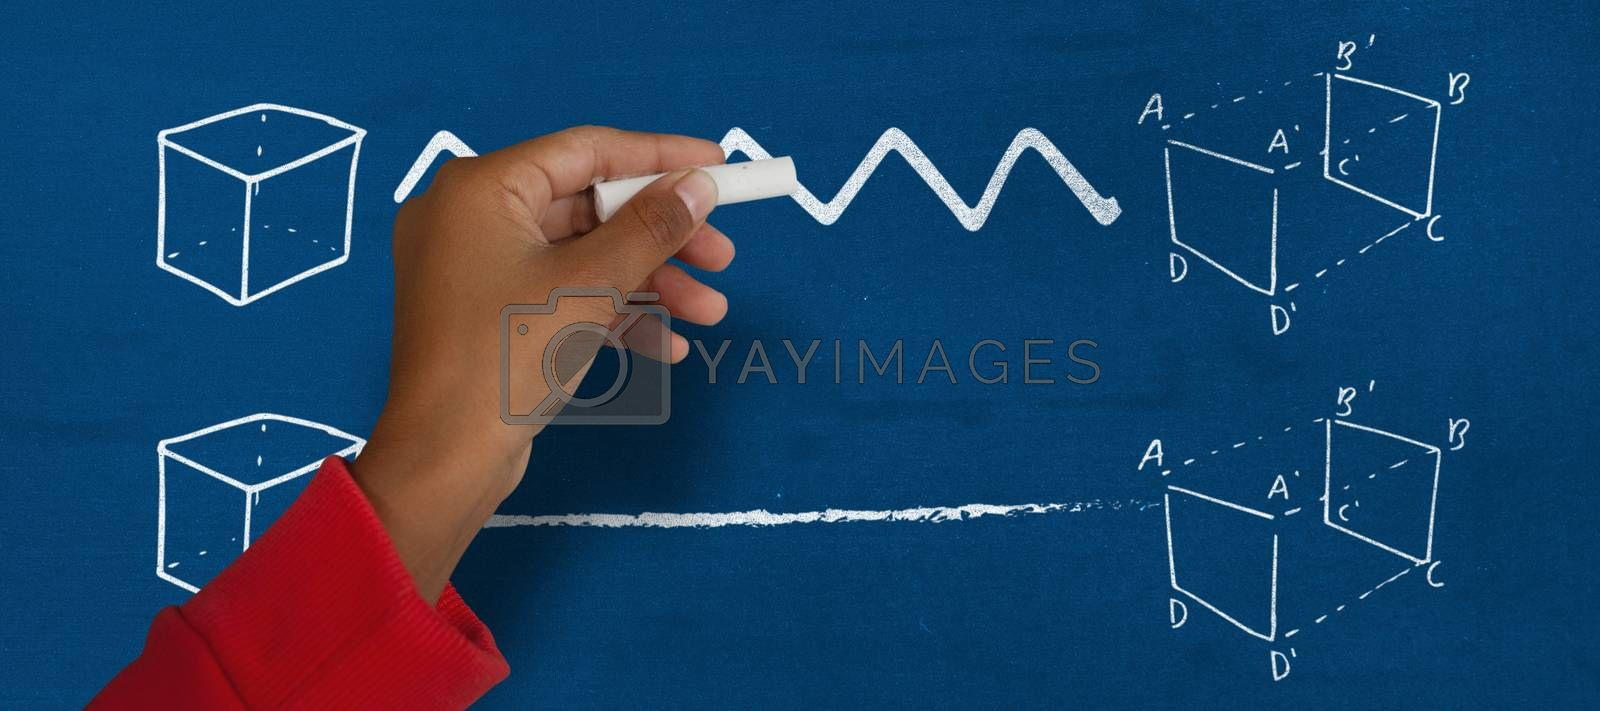 Composite image of cropped image of girl with hand raised holding chalk by Wavebreakmedia